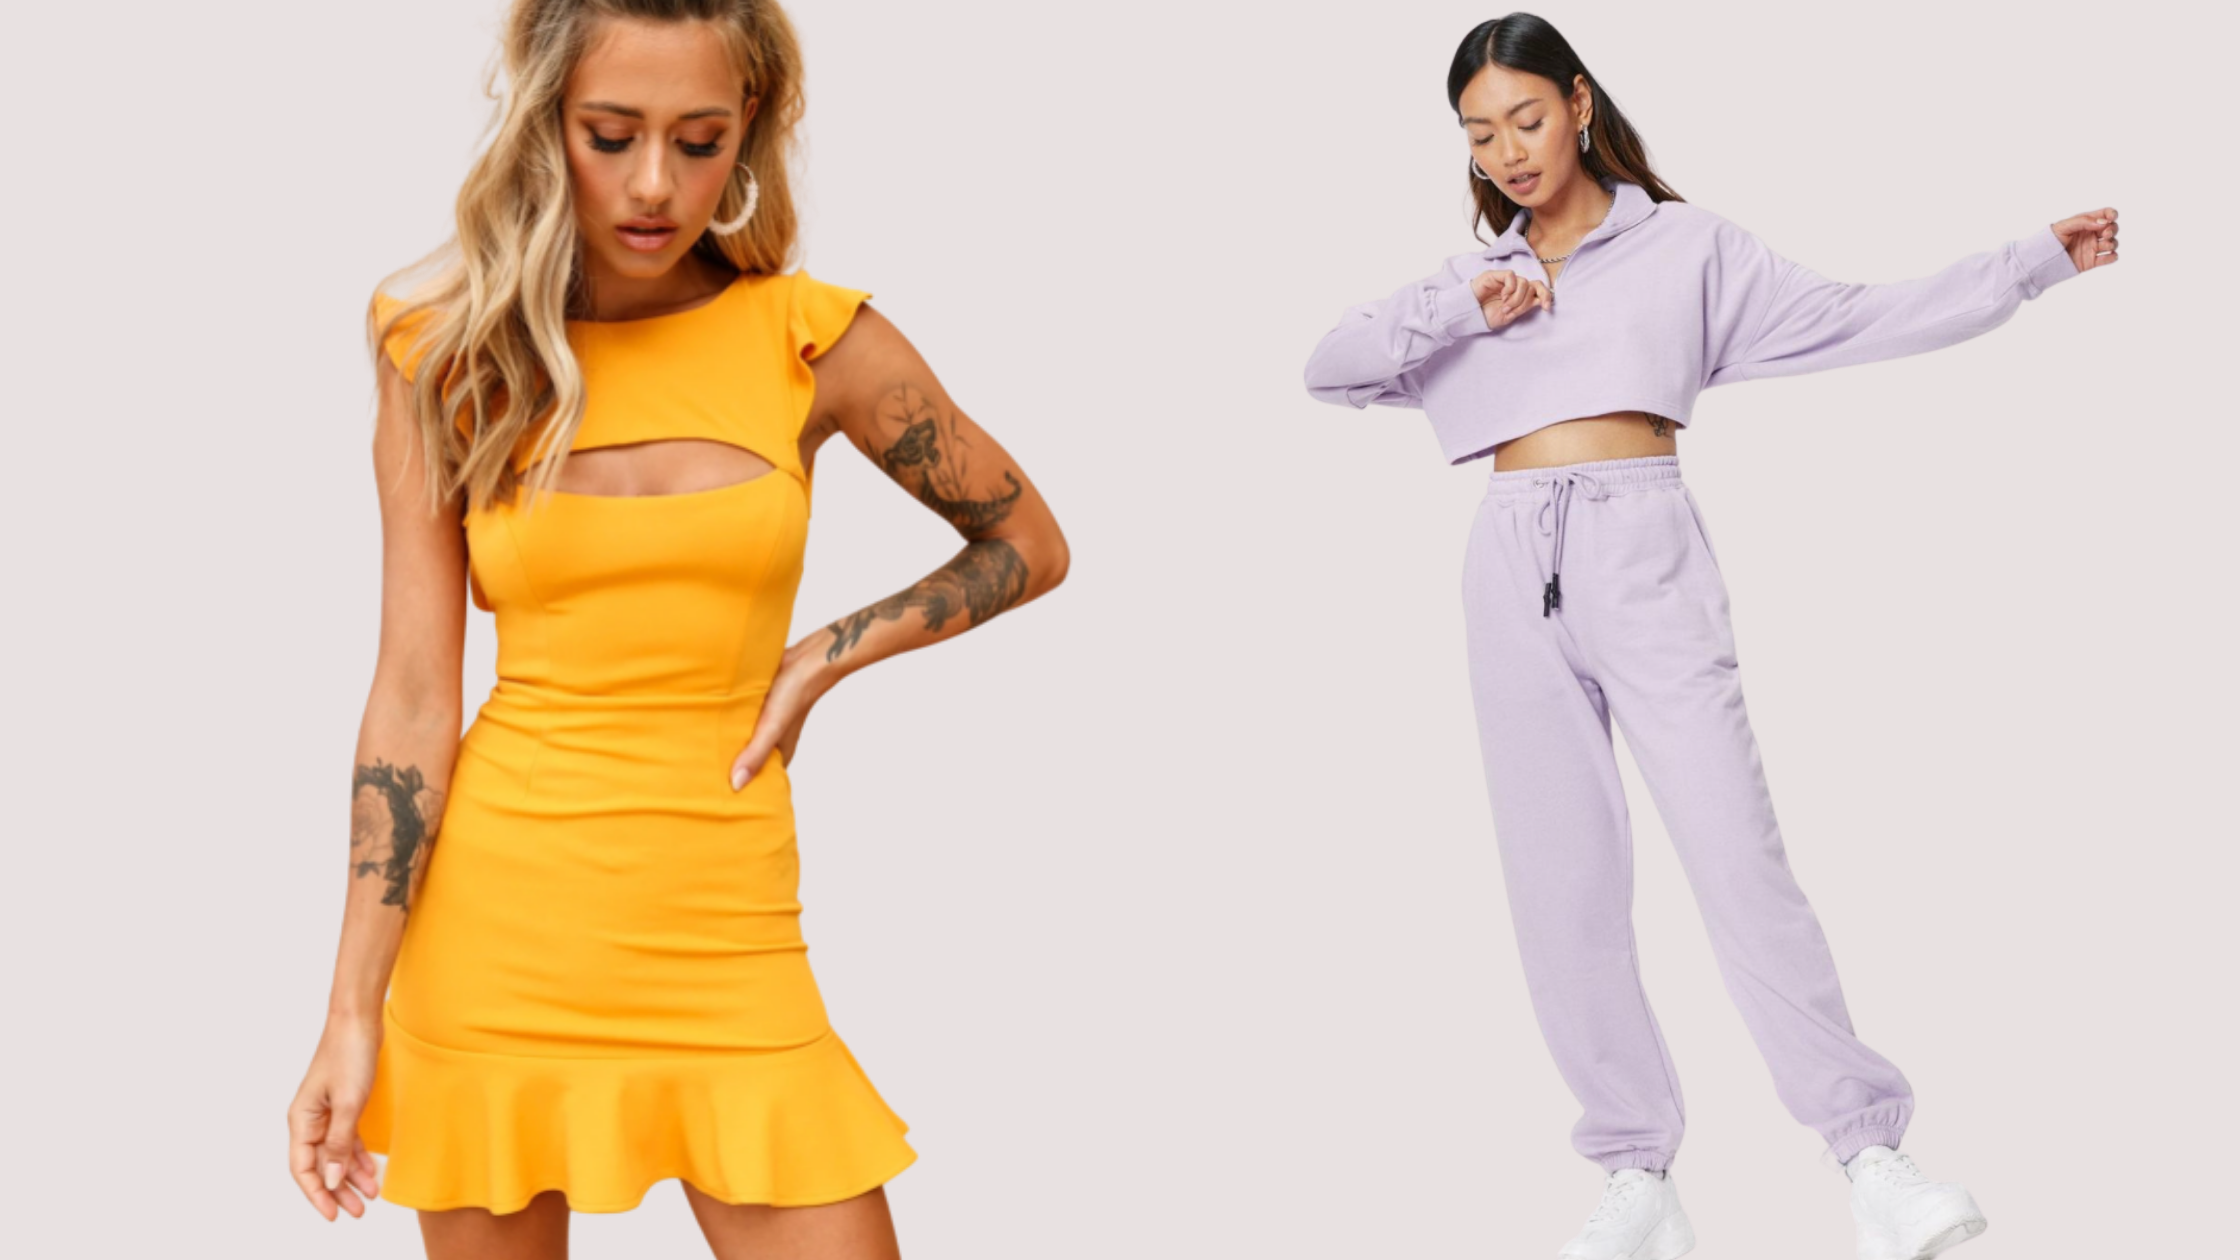 15 Stores Like Princess Polly for Cute and Trendy Clothes